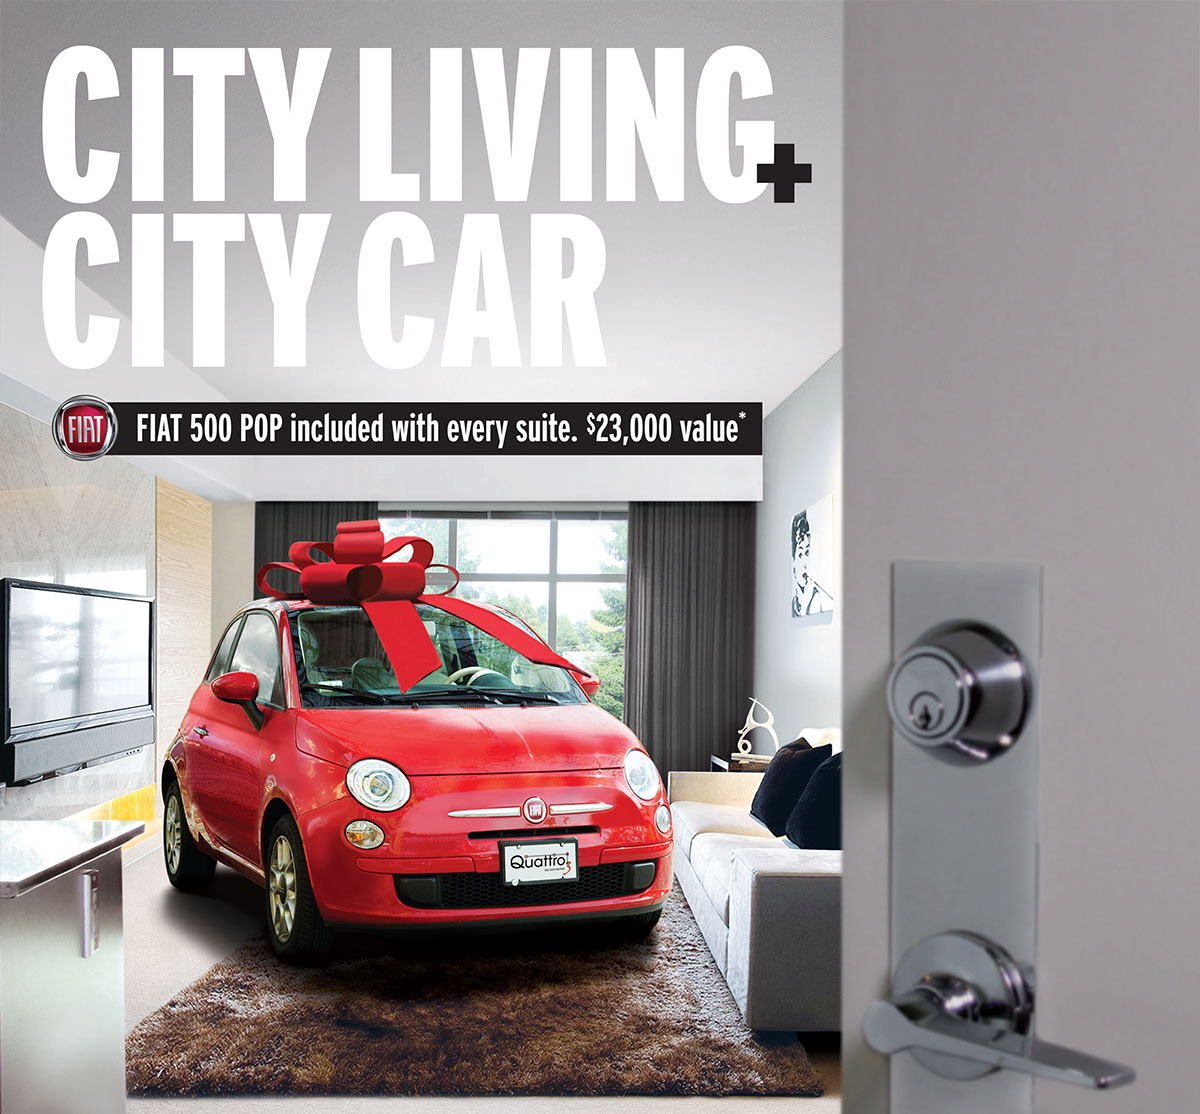 New Surrey development includes new Fiat 500 Pop with purchase!